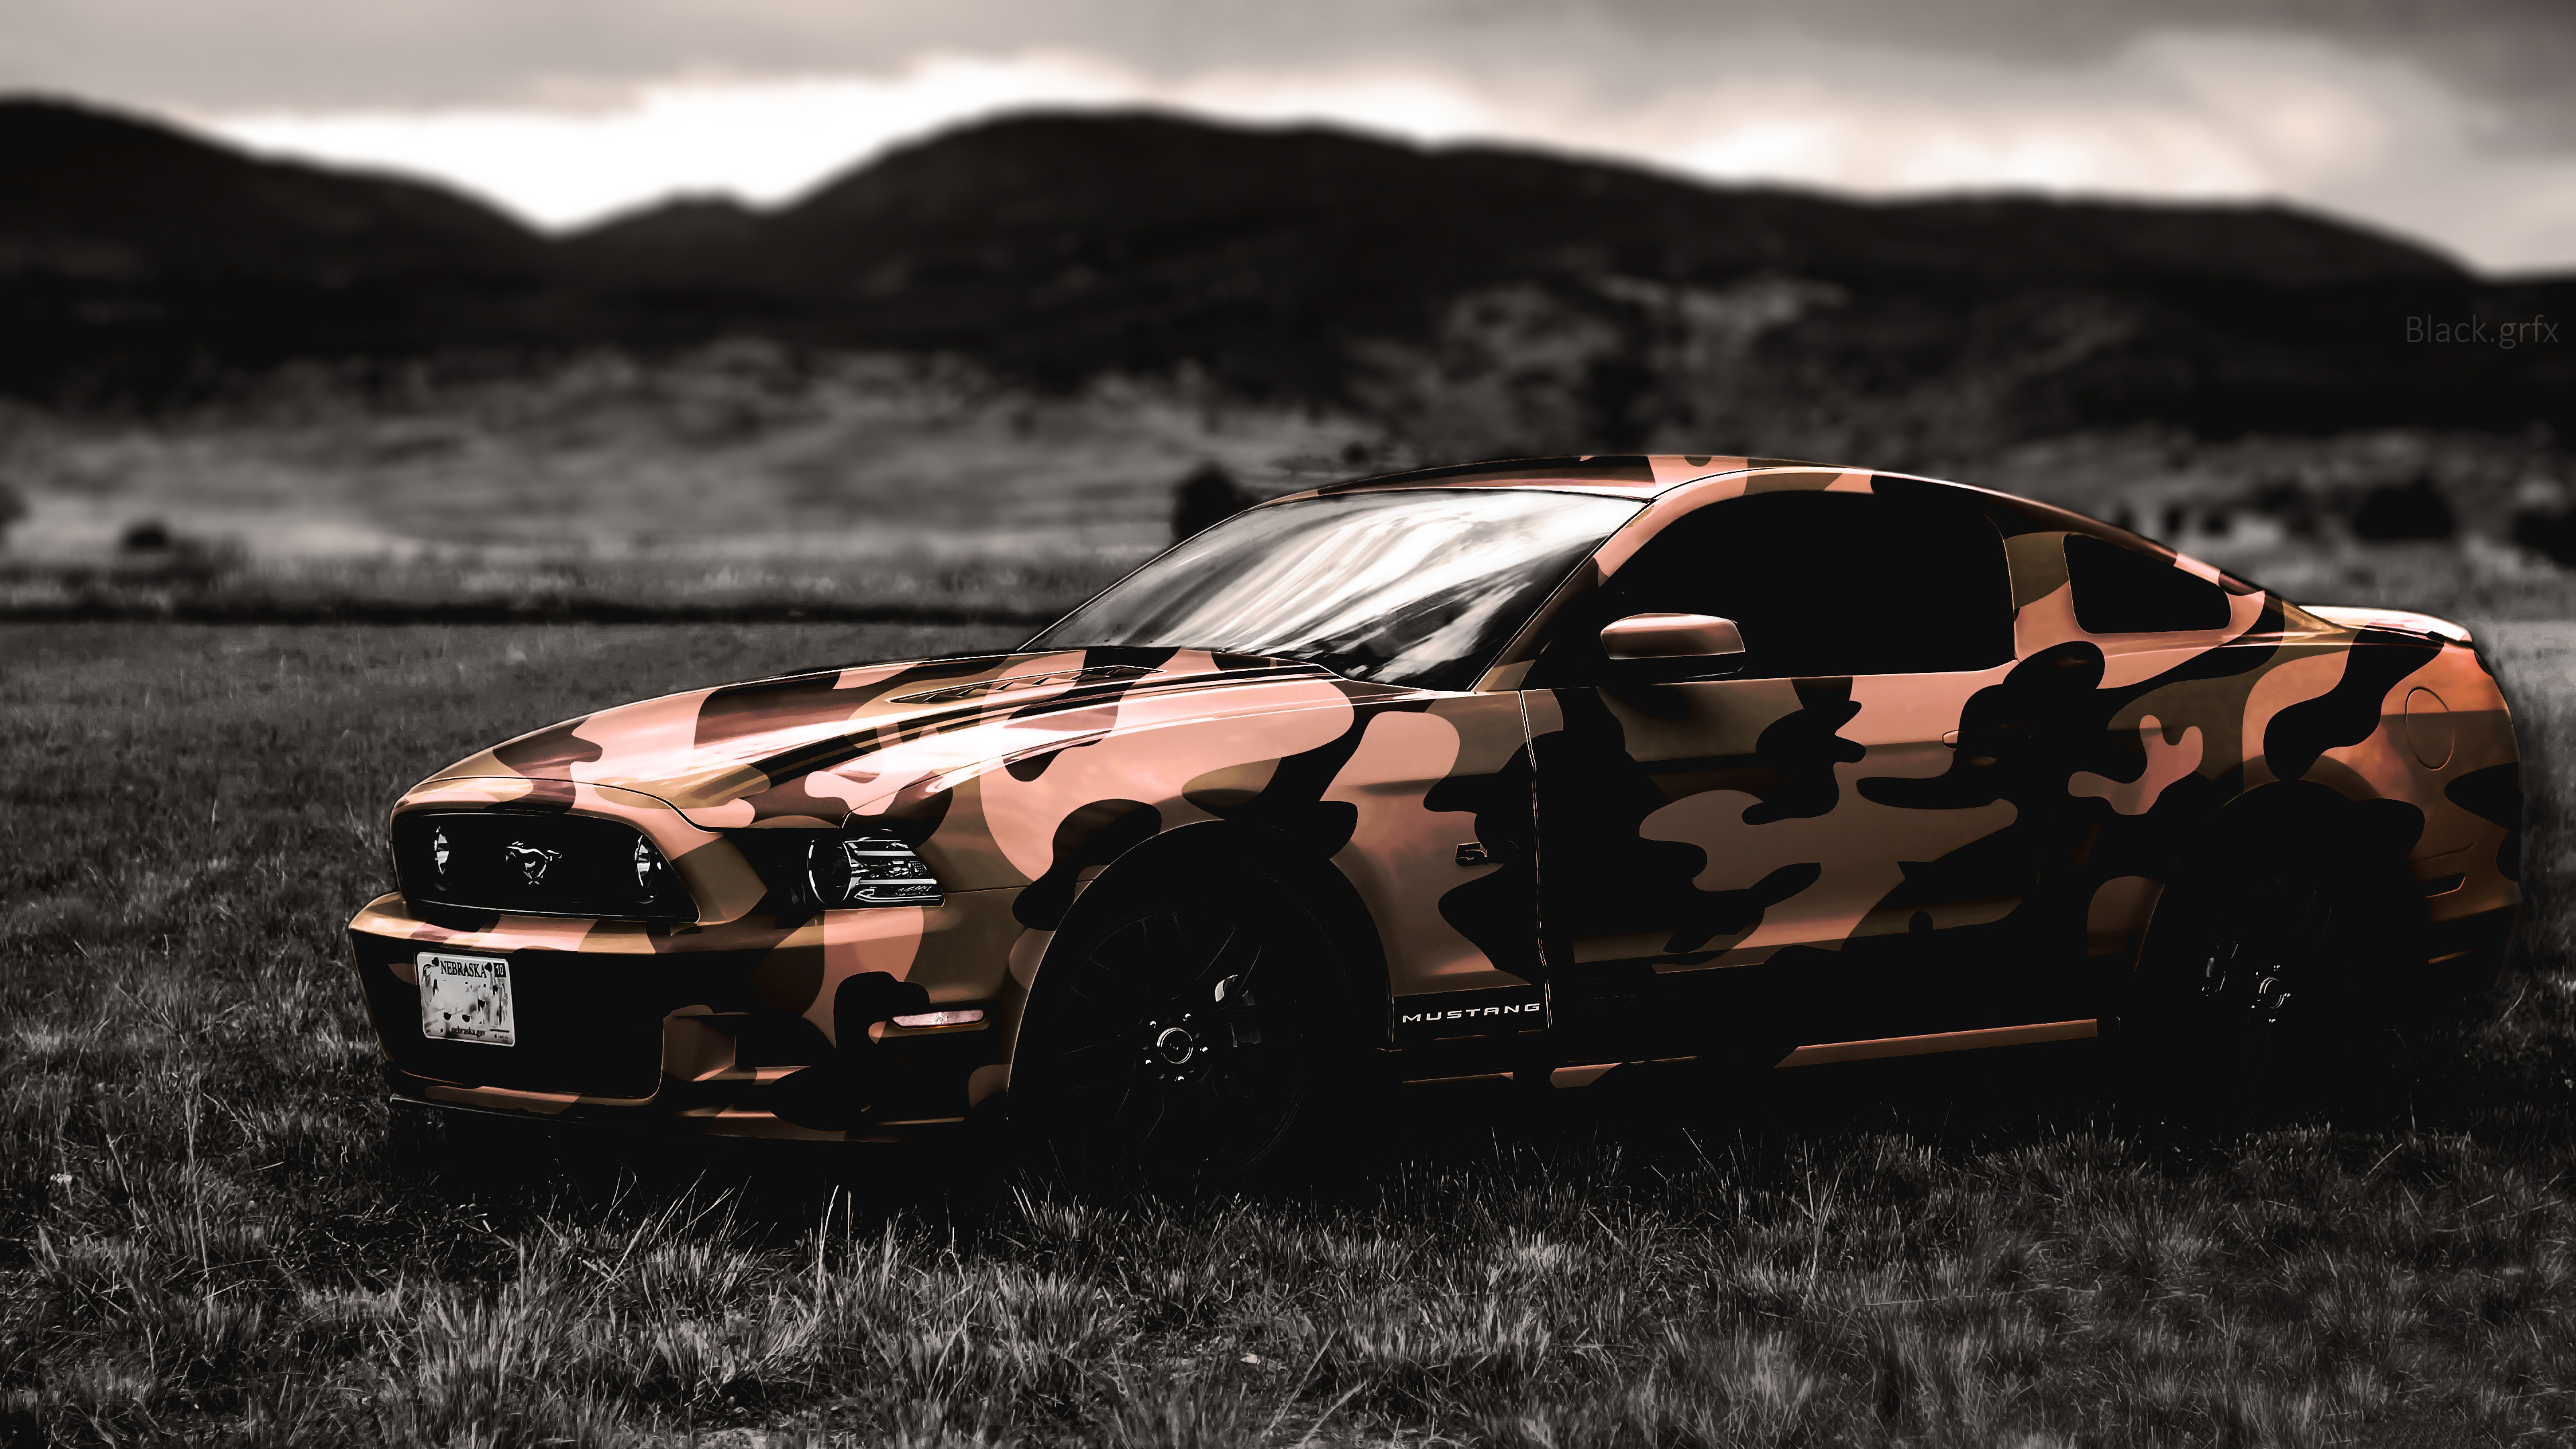 Ford Mustang Military Car 4k Wallpaper Best Wallpapers